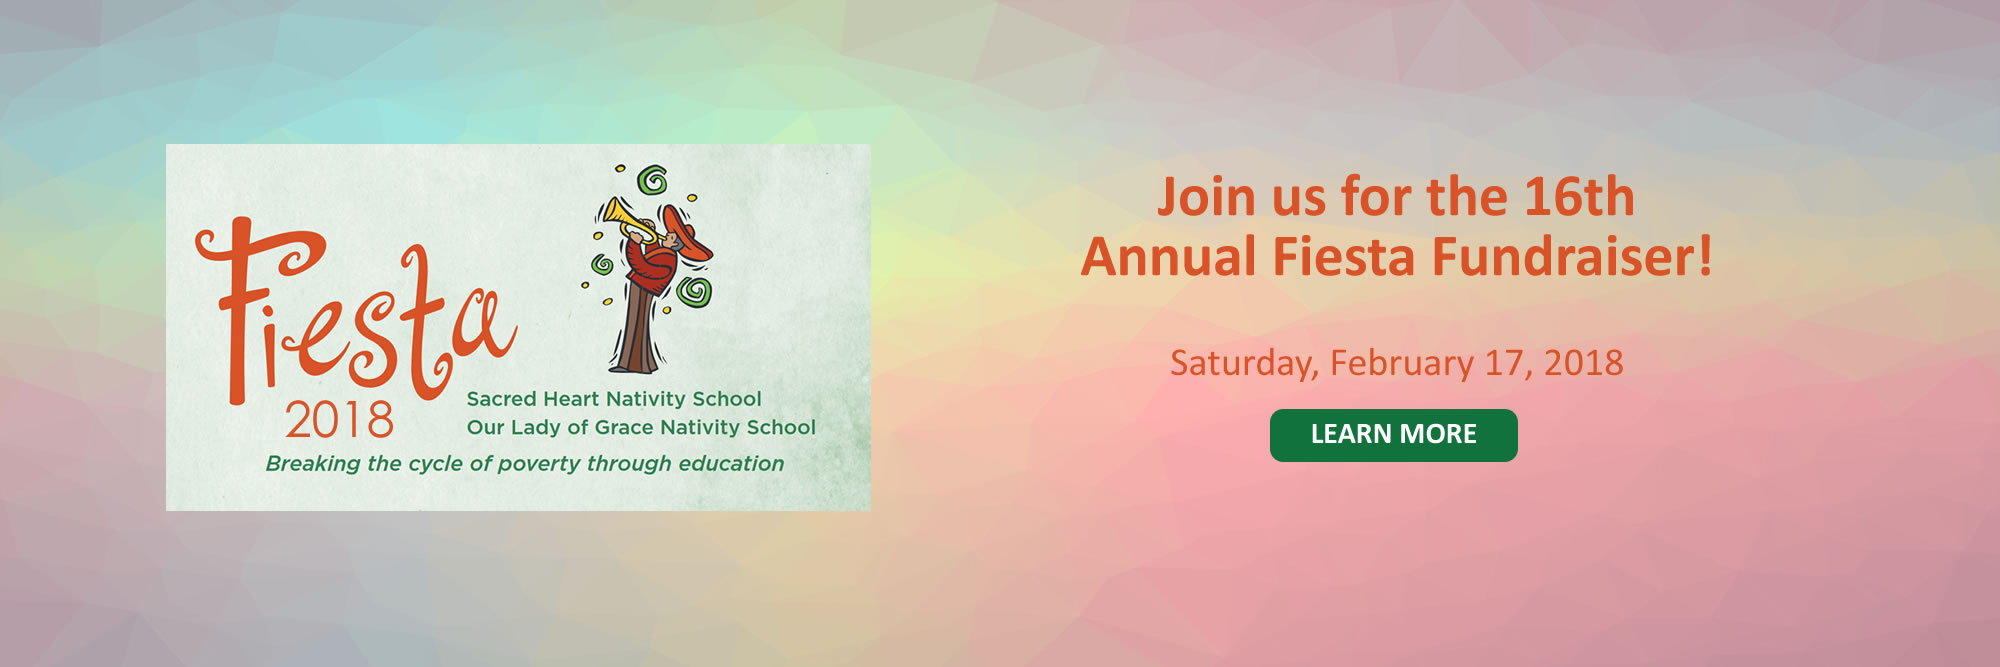 Join us for the 16th Annual Fiesta Fundraiser